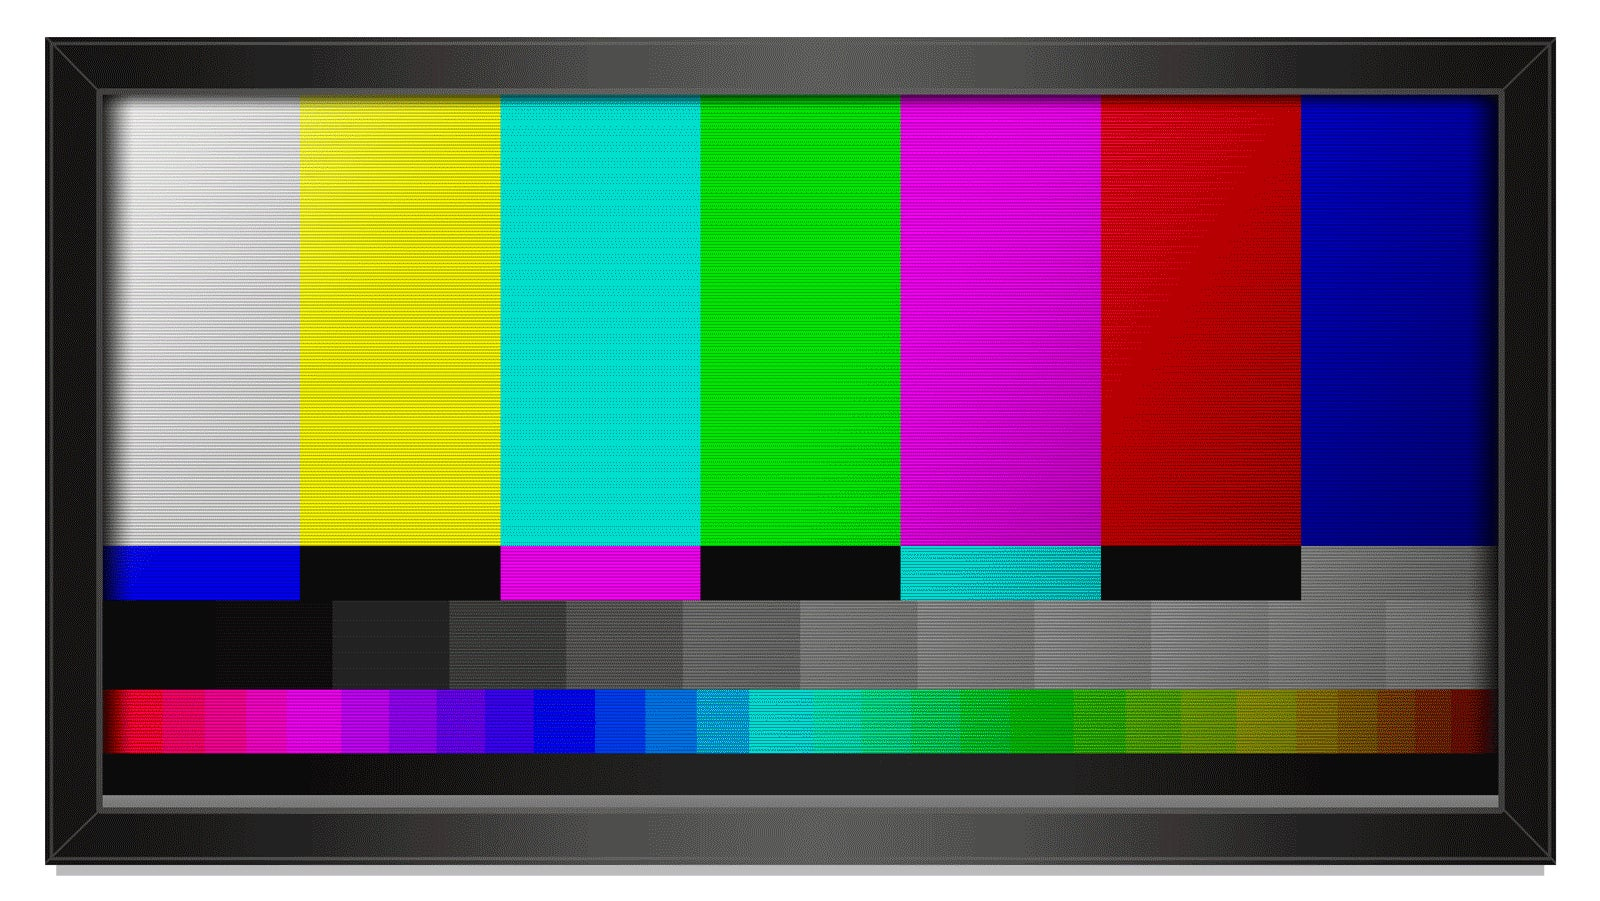 Why You Definitely Need to Calibrate Your TV